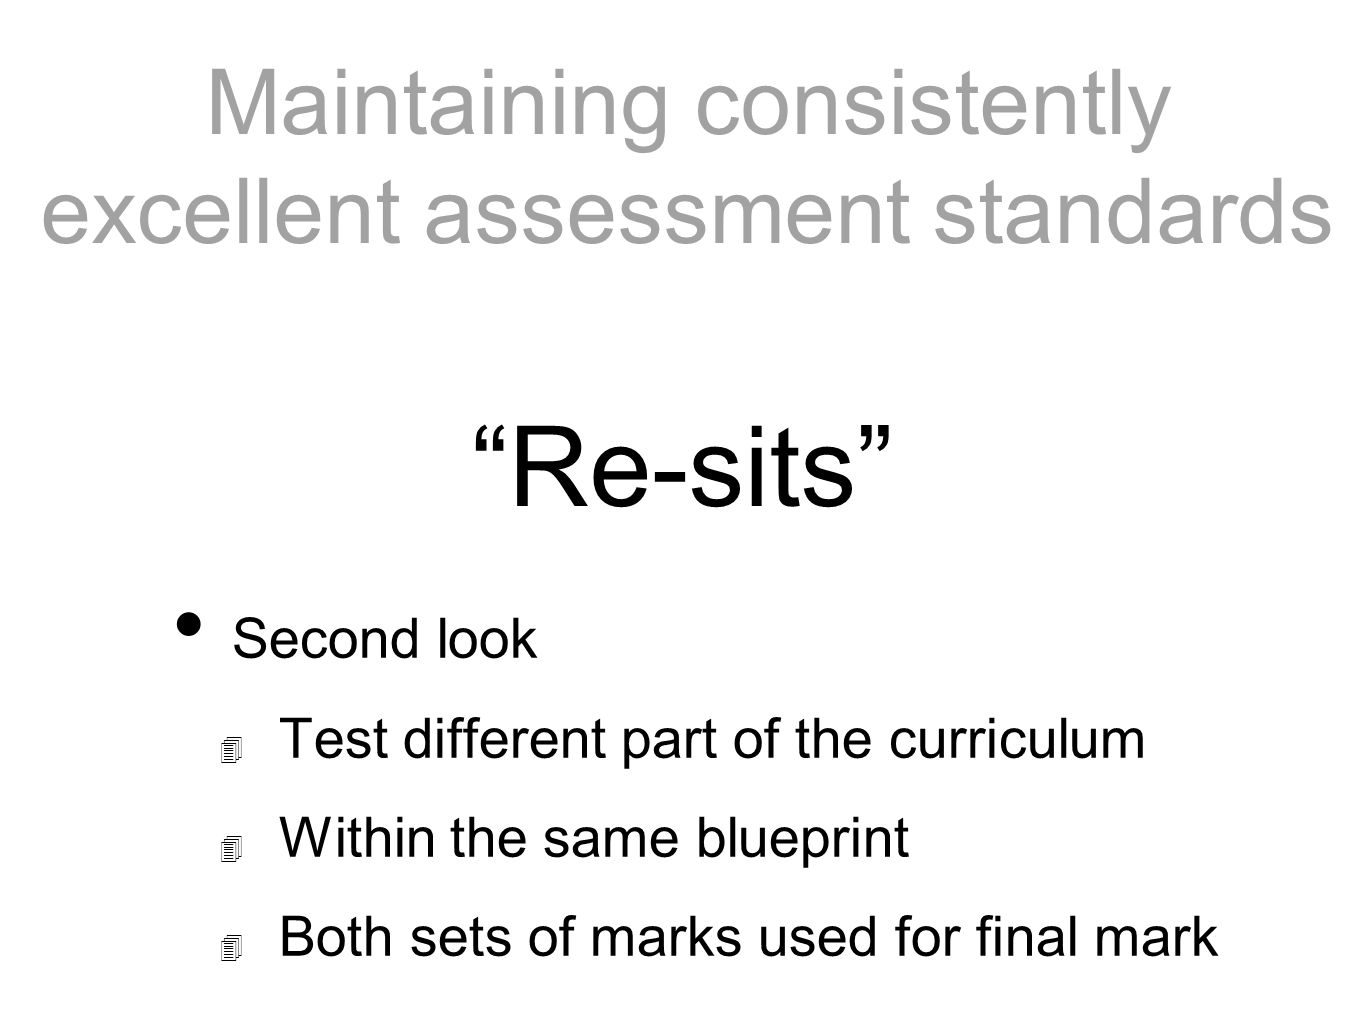 Maintaining consistently excellent assessment standards Second look Test different part of the curriculum Within the same blueprint Both sets of marks used for final mark Re-sits